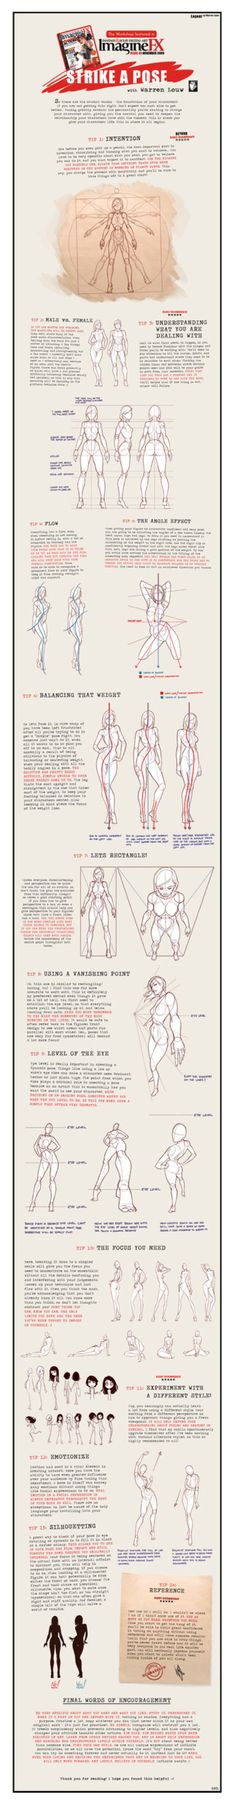 Character Design Life Drawing Pdf : Life drawing poses character references on pinterest